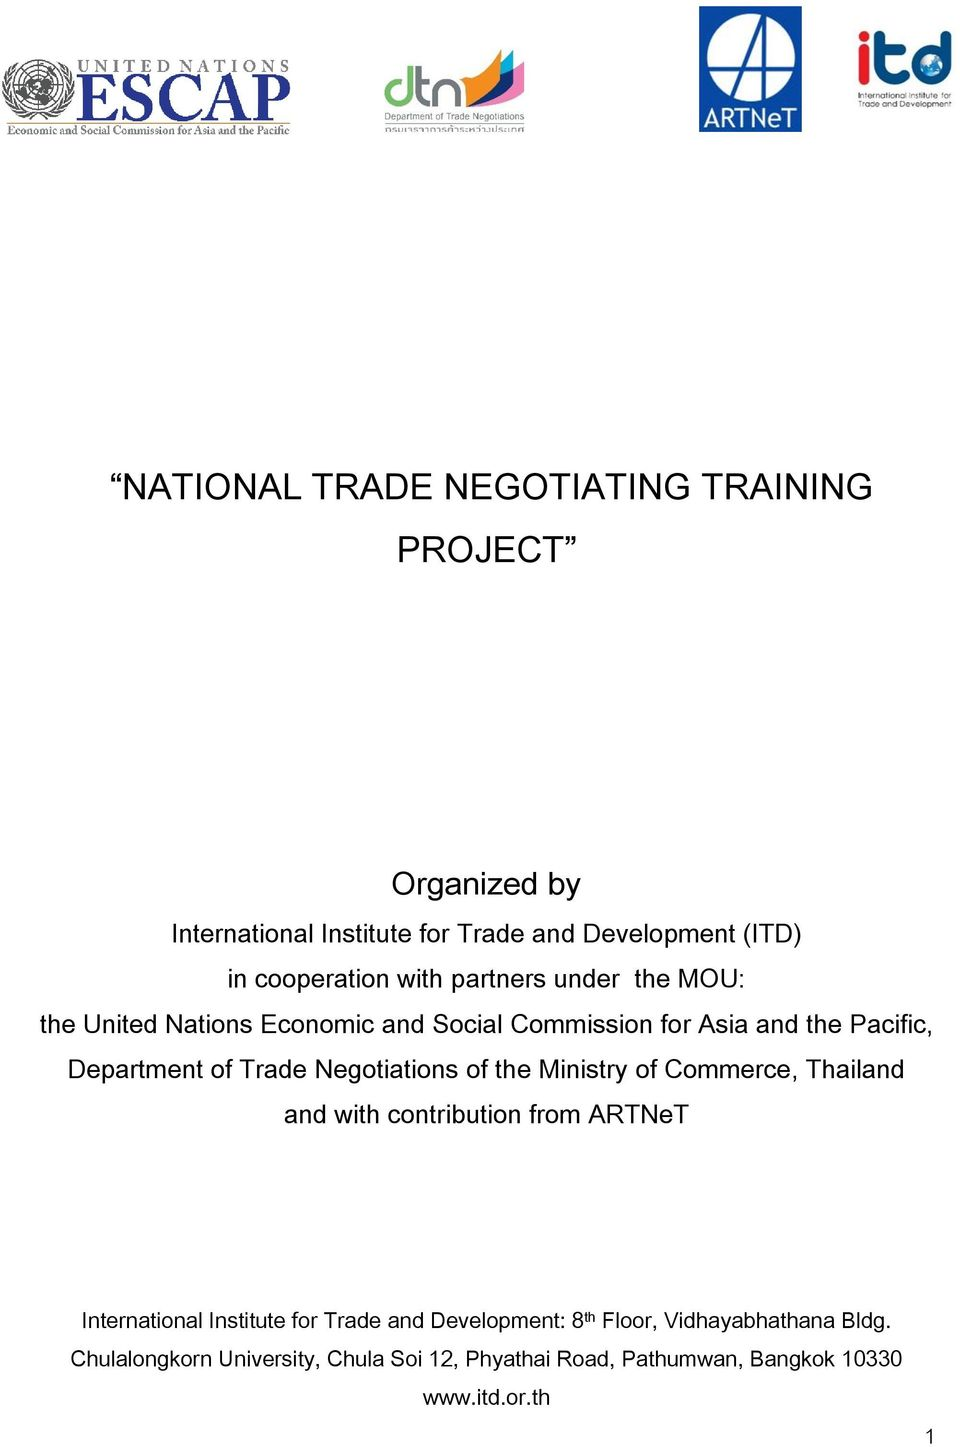 Nations Economic and Social Commission for Asia and the Pacific, Department of Trade